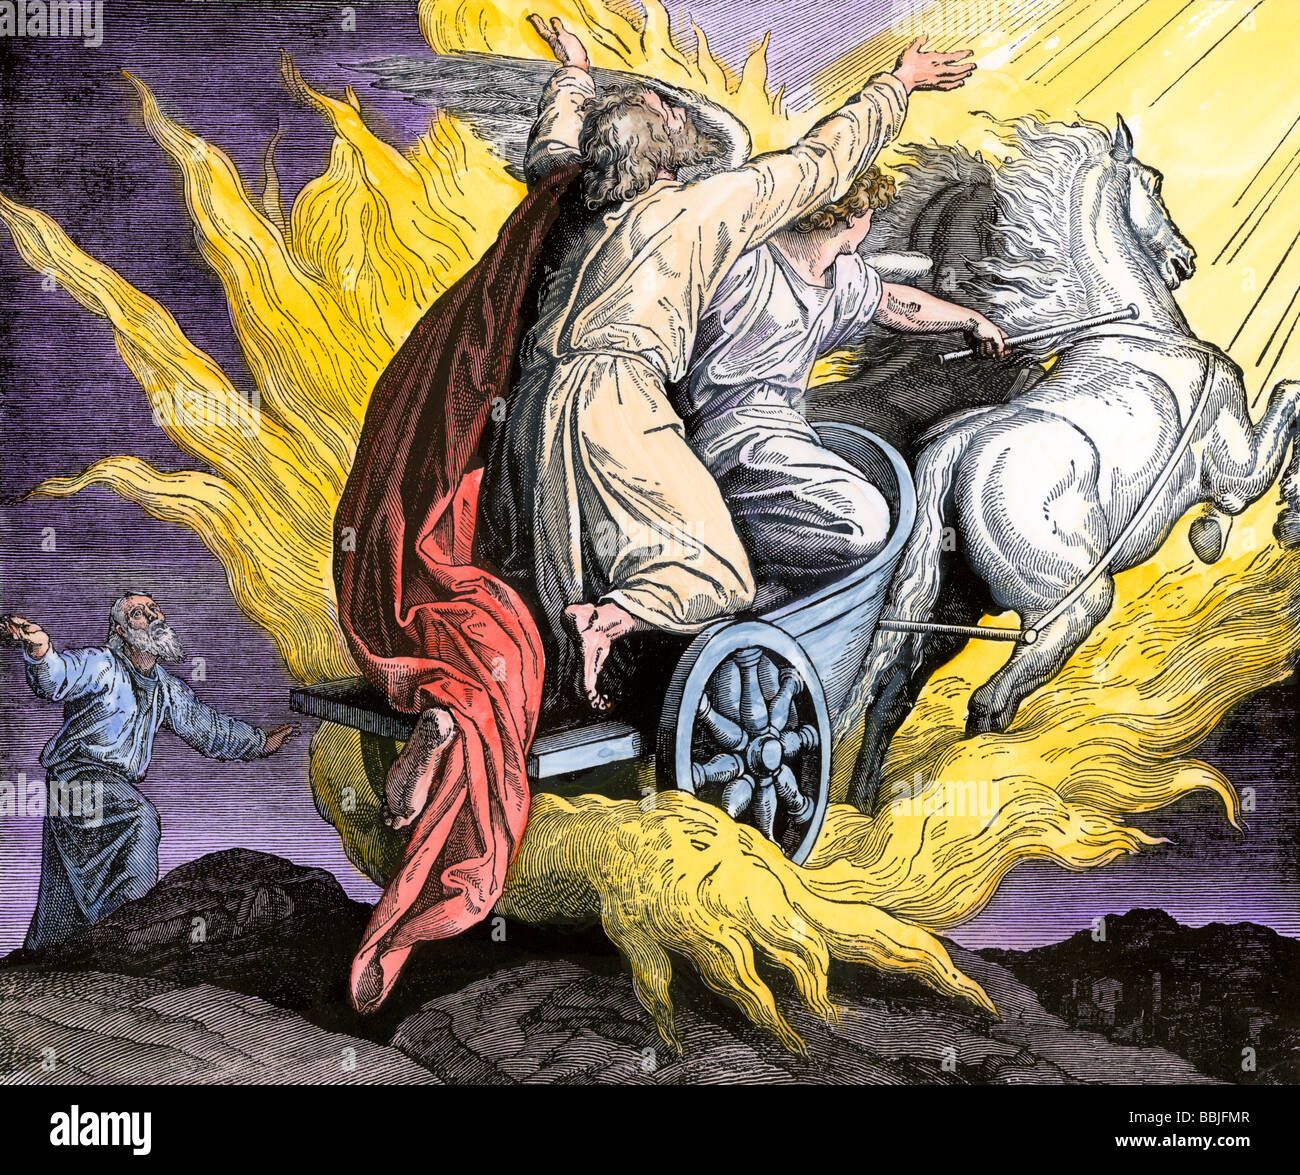 Elijah taken by an angel in a fiery chariot - Stock Image